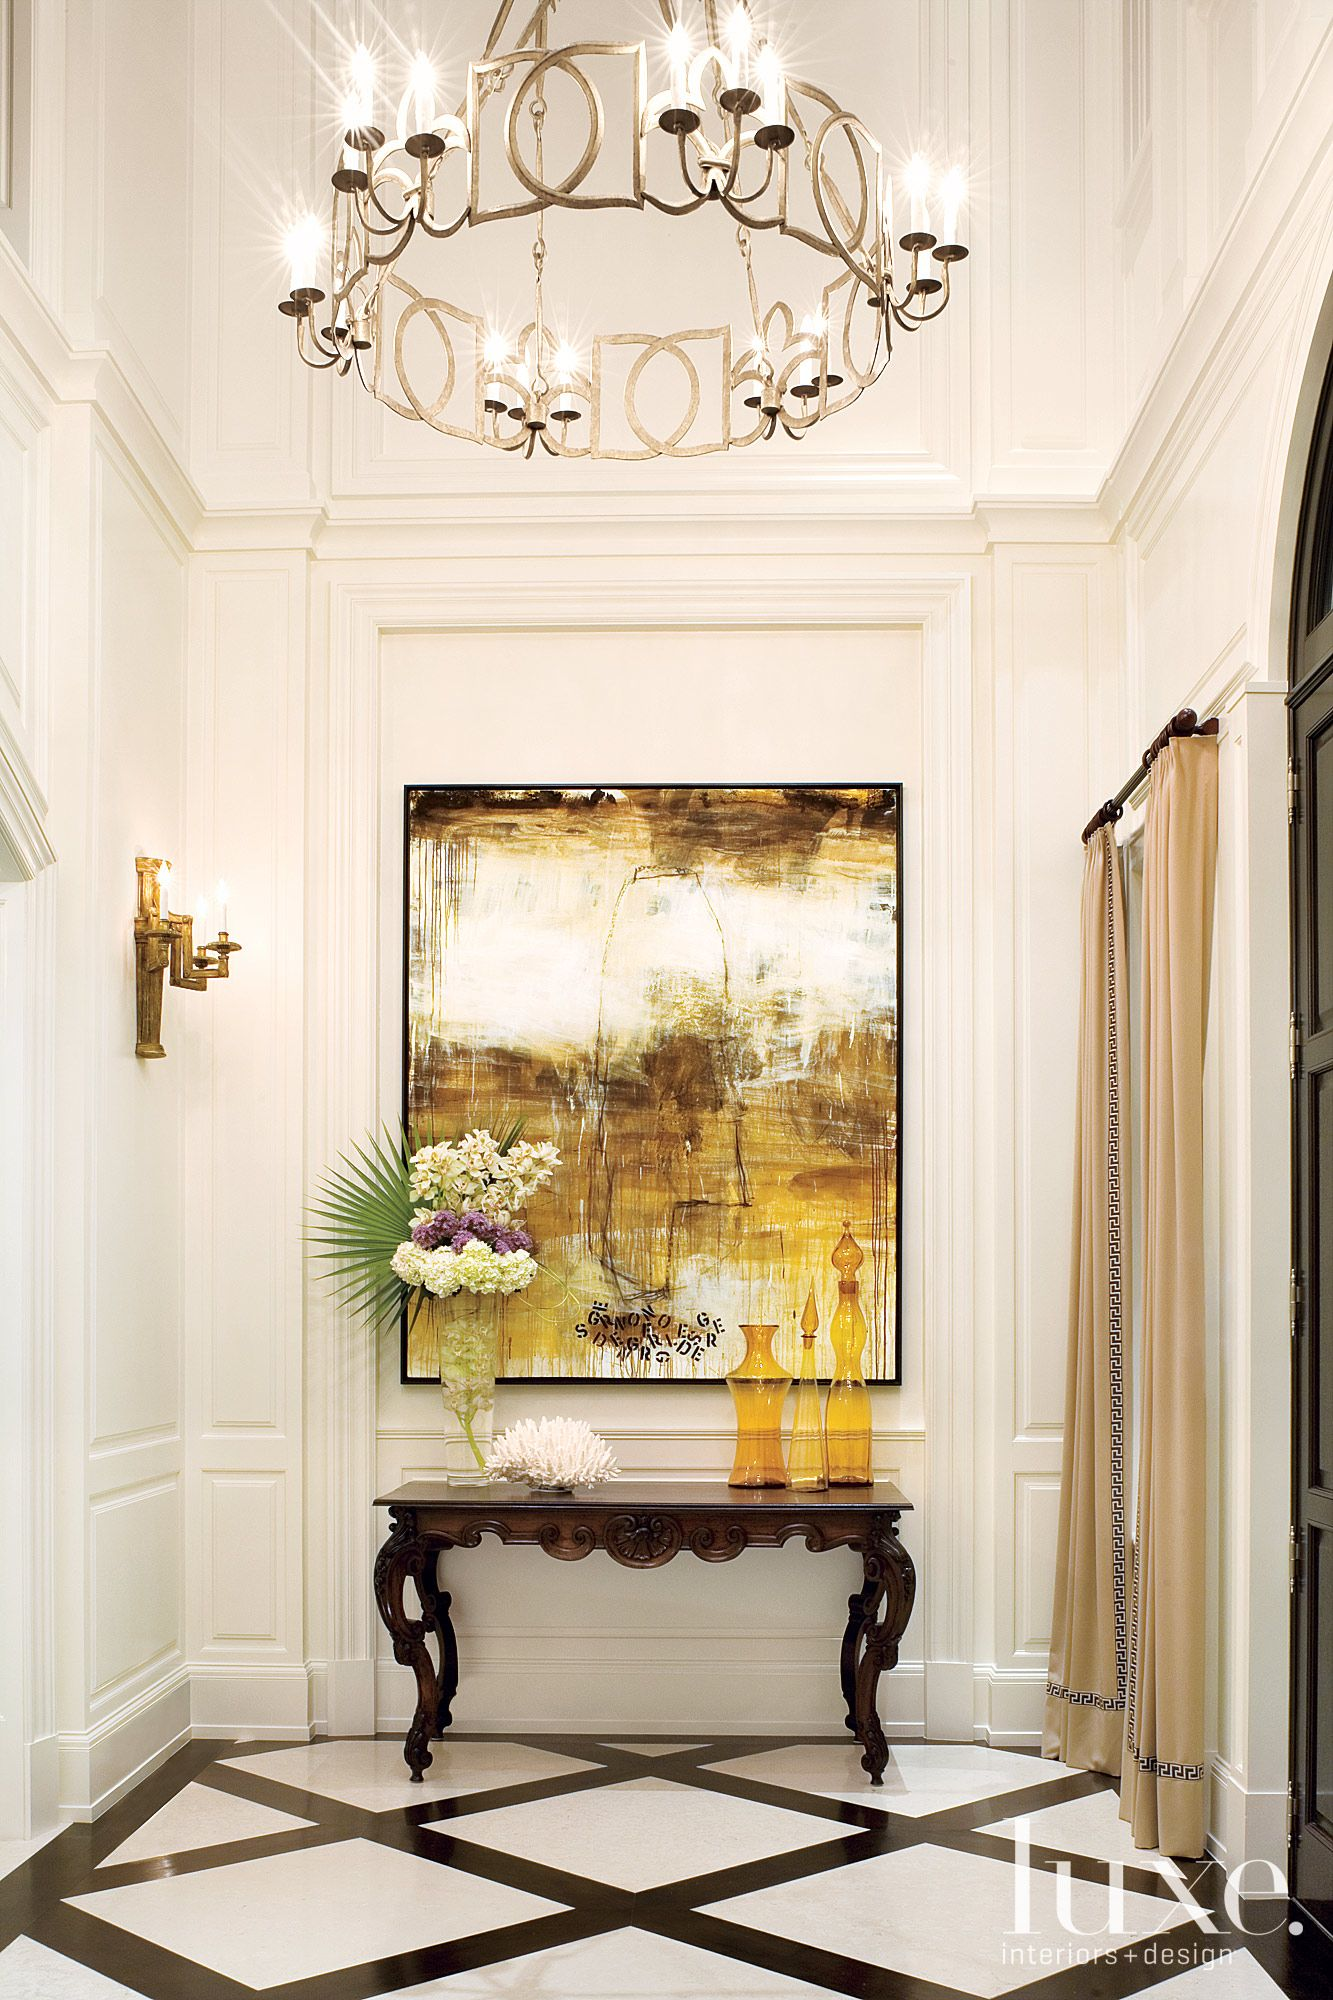 Lighting Basement Washroom Stairs: A Chandelier And Sconce Light The Foyer, Both By Dessin